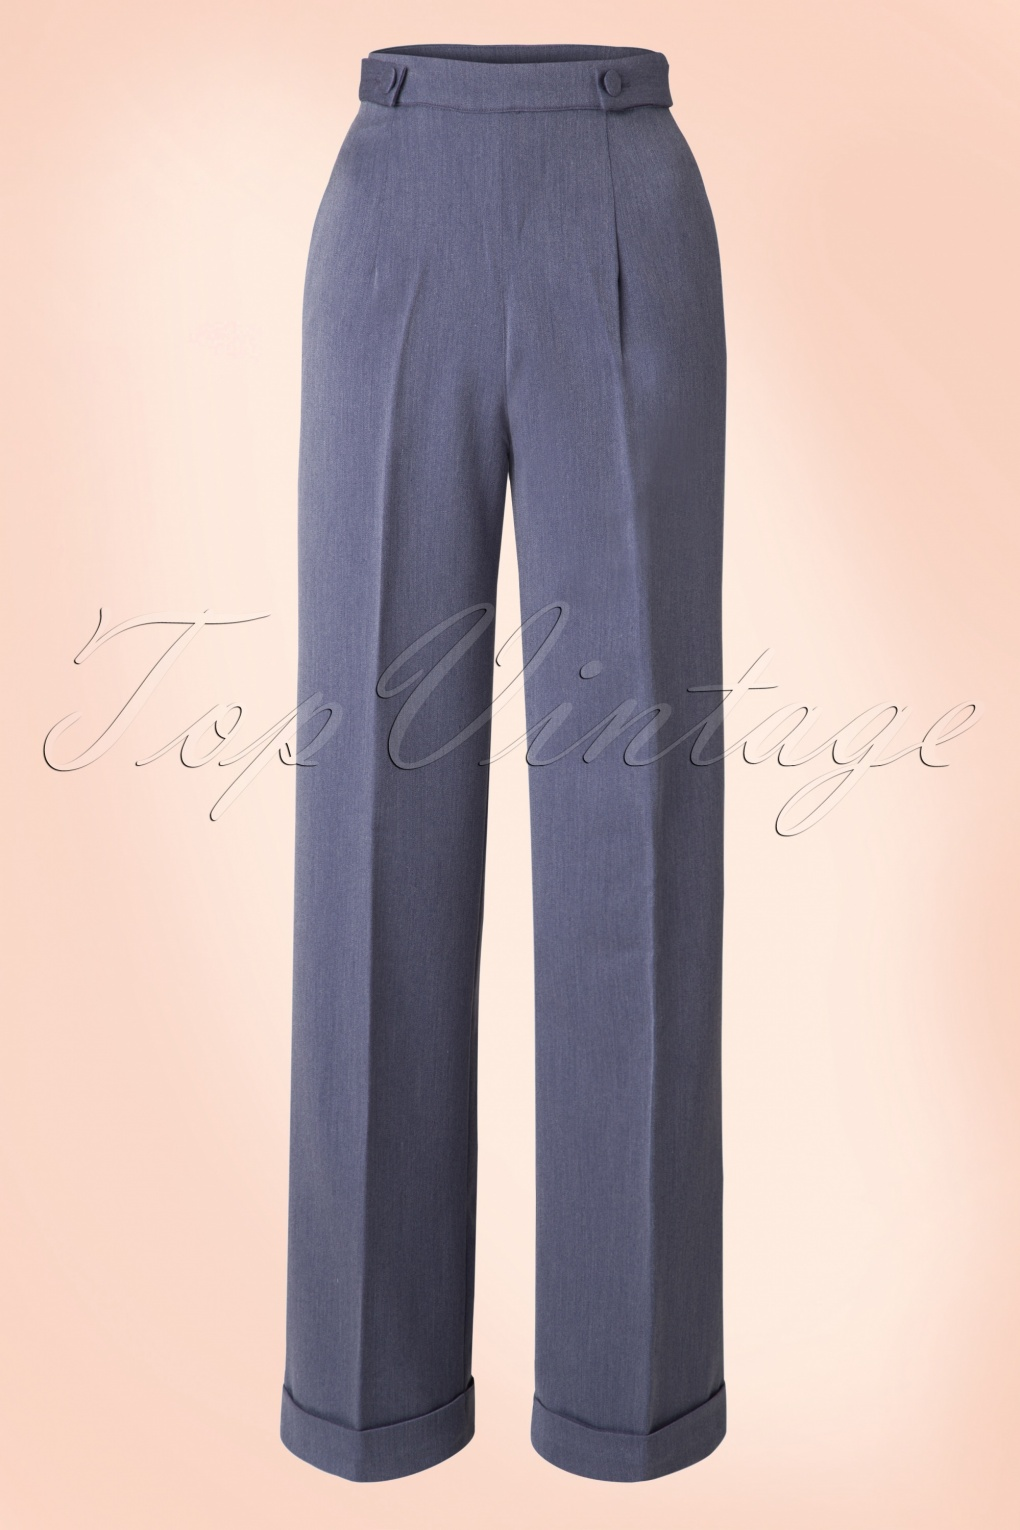 Retro Pants & Jeans 40s Party On Classy Trousers in Denim £33.89 AT vintagedancer.com